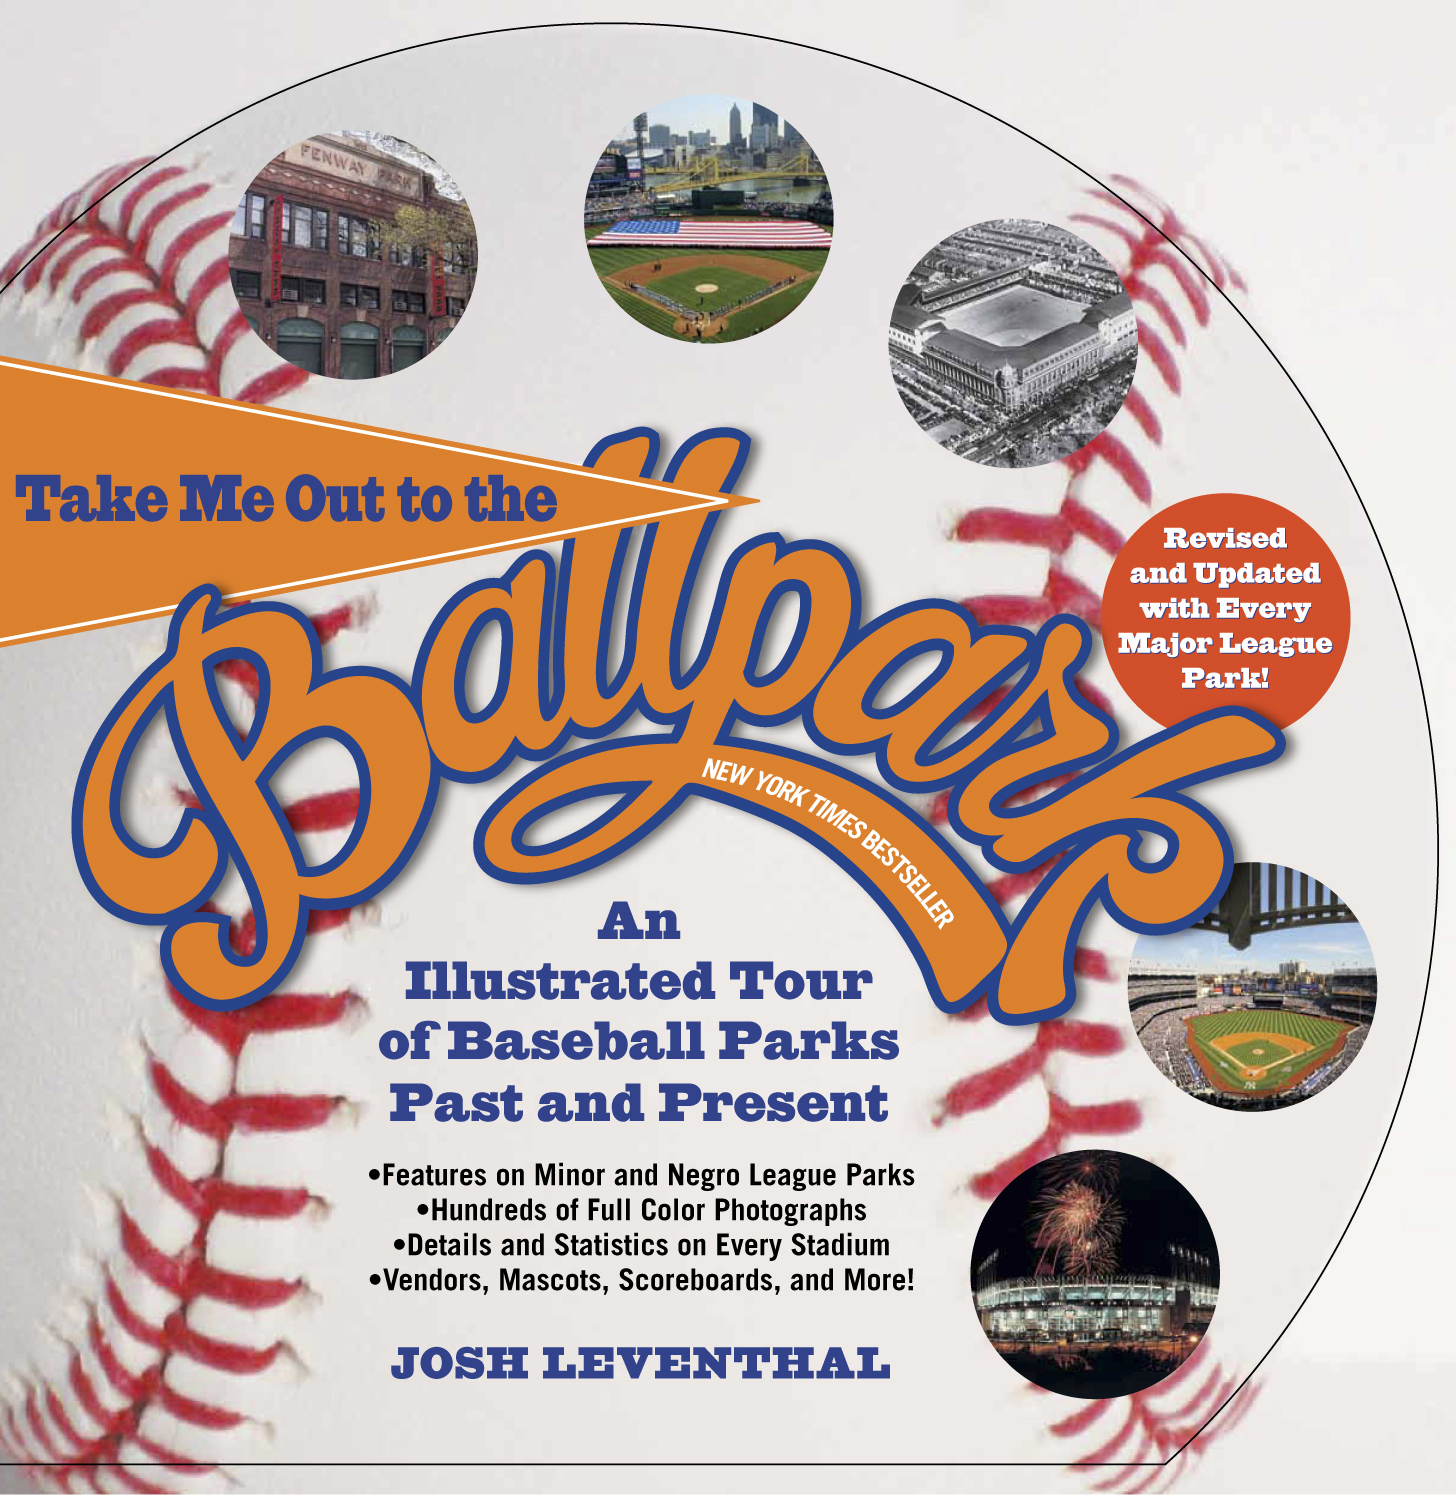 Take Me Out to the Ballpark Revised and Updated : An Illustrated Tour of Baseball Parks Past and Present Featuring Every Major League Park, Plus Minor League and Negro League Parks